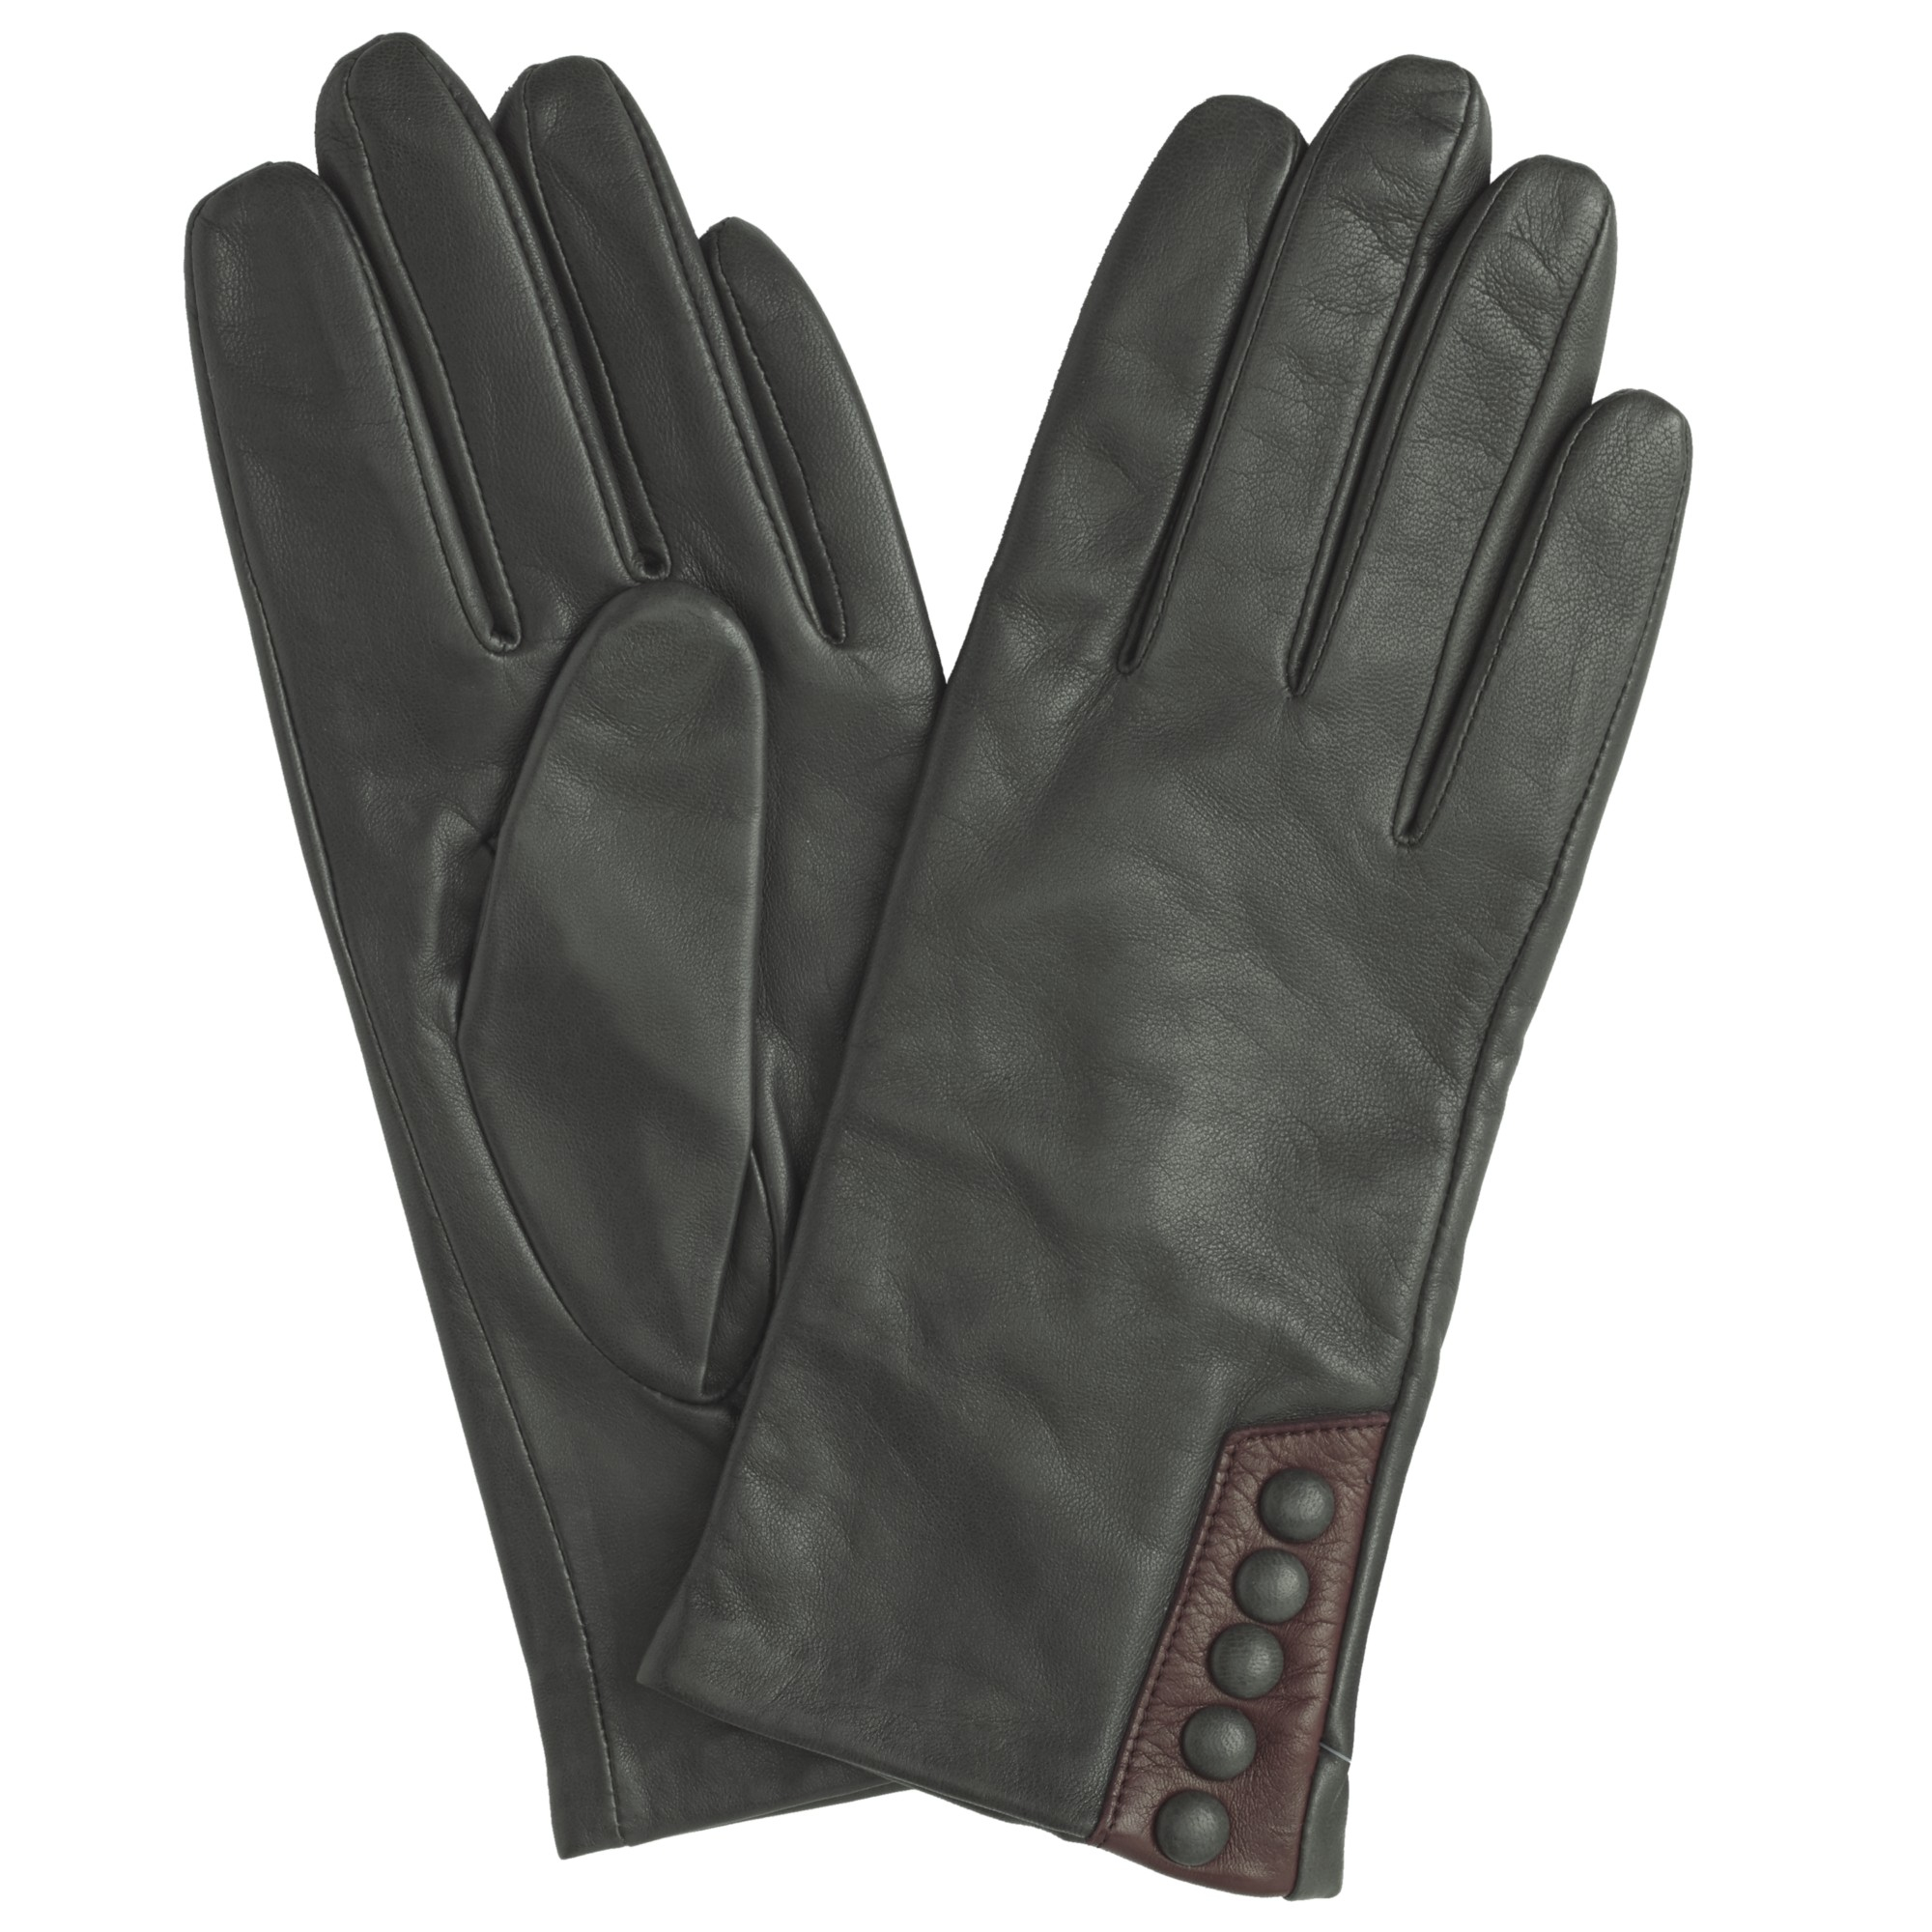 John lewis ladies black leather gloves -